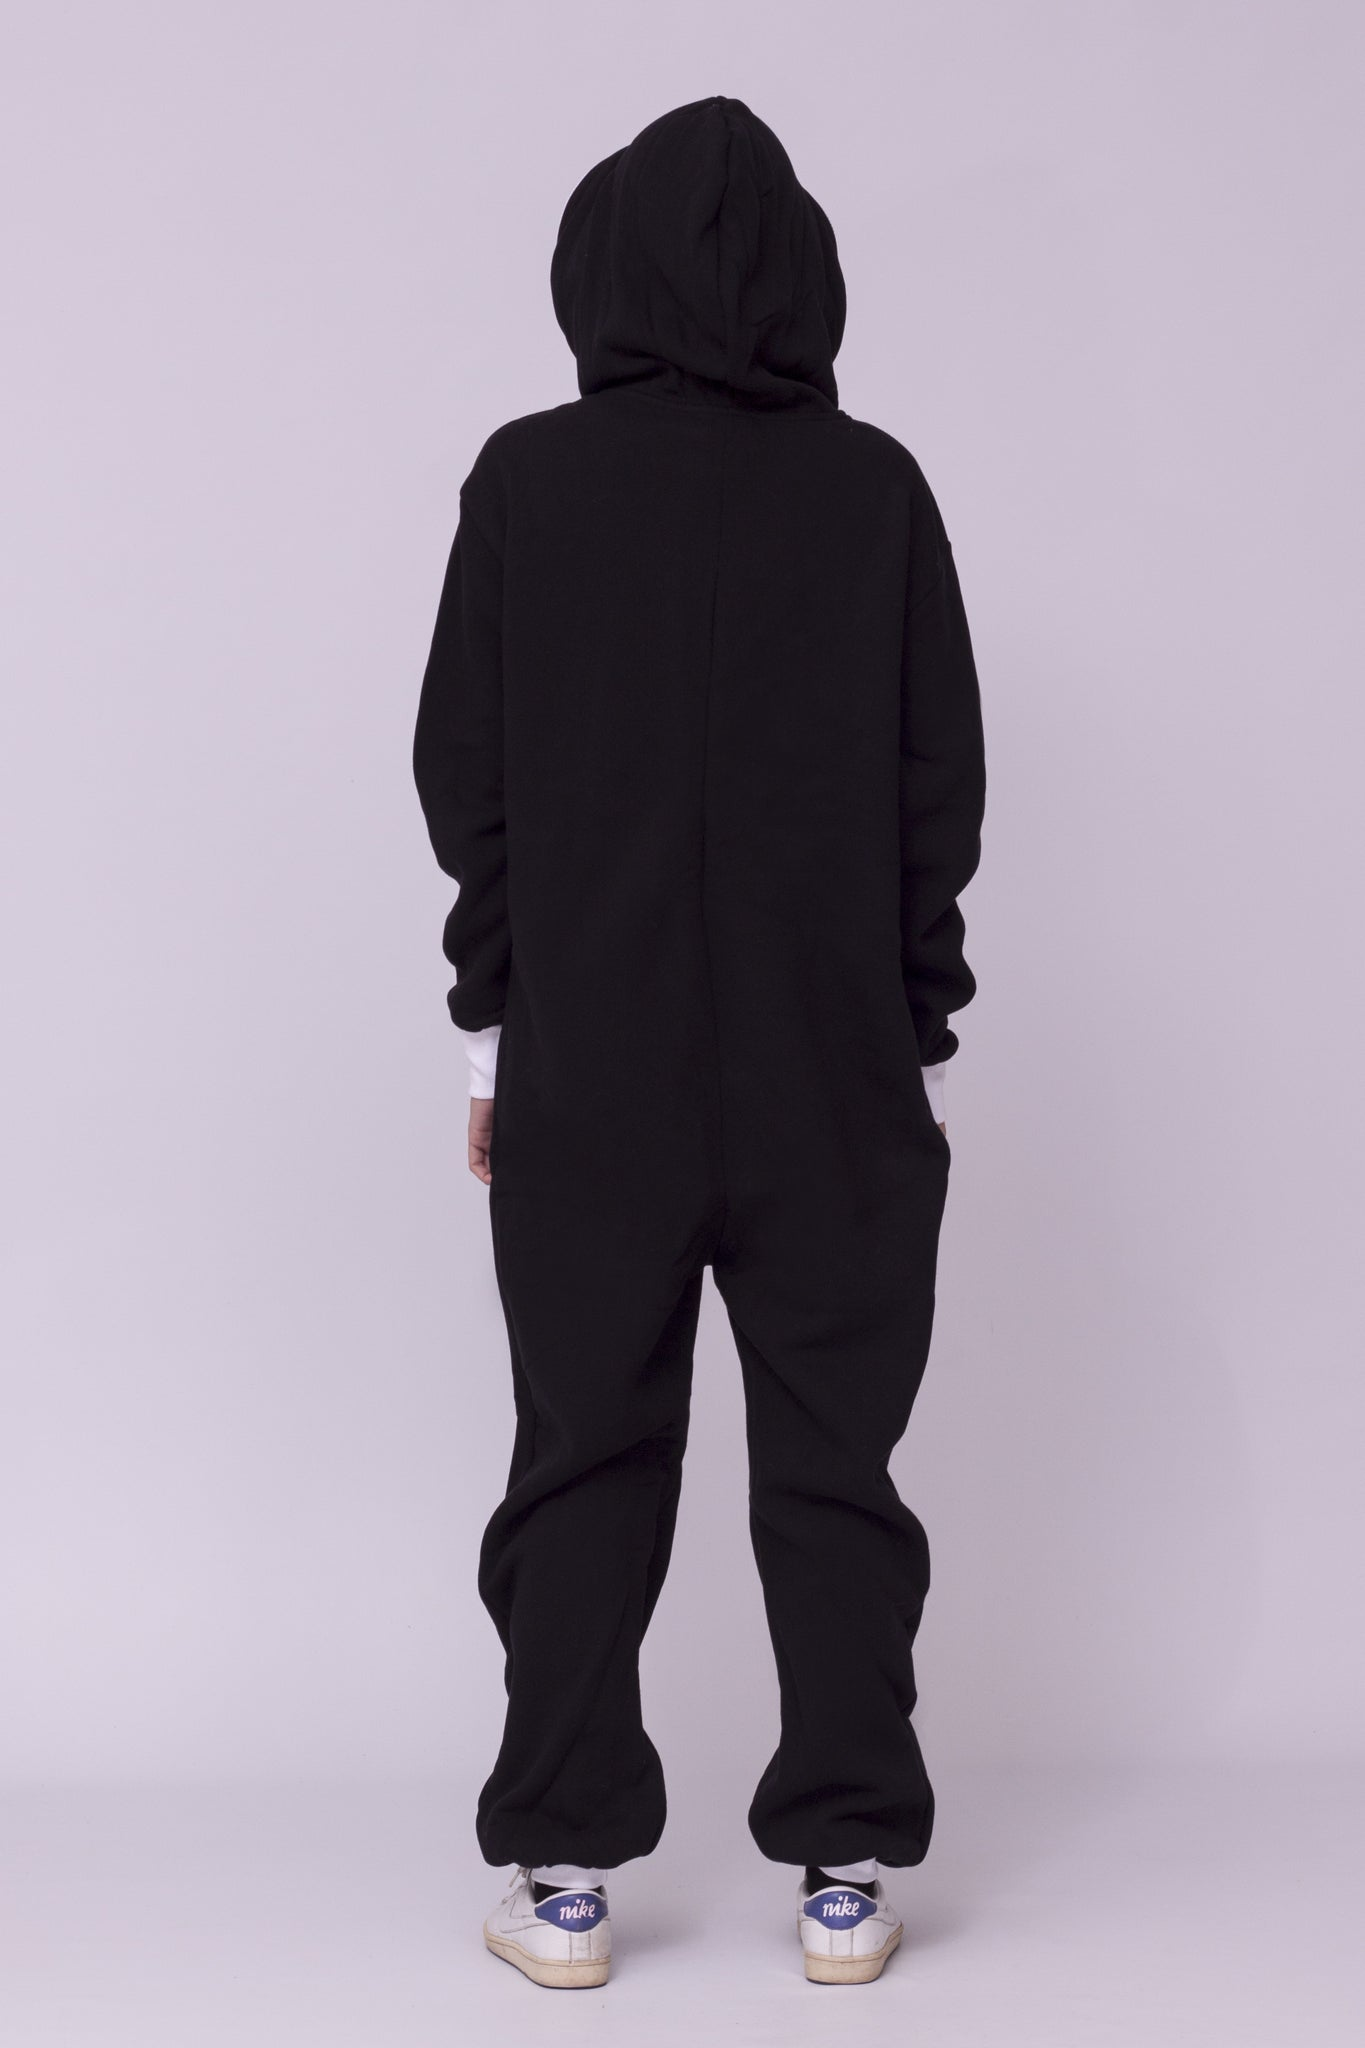 black men onesie